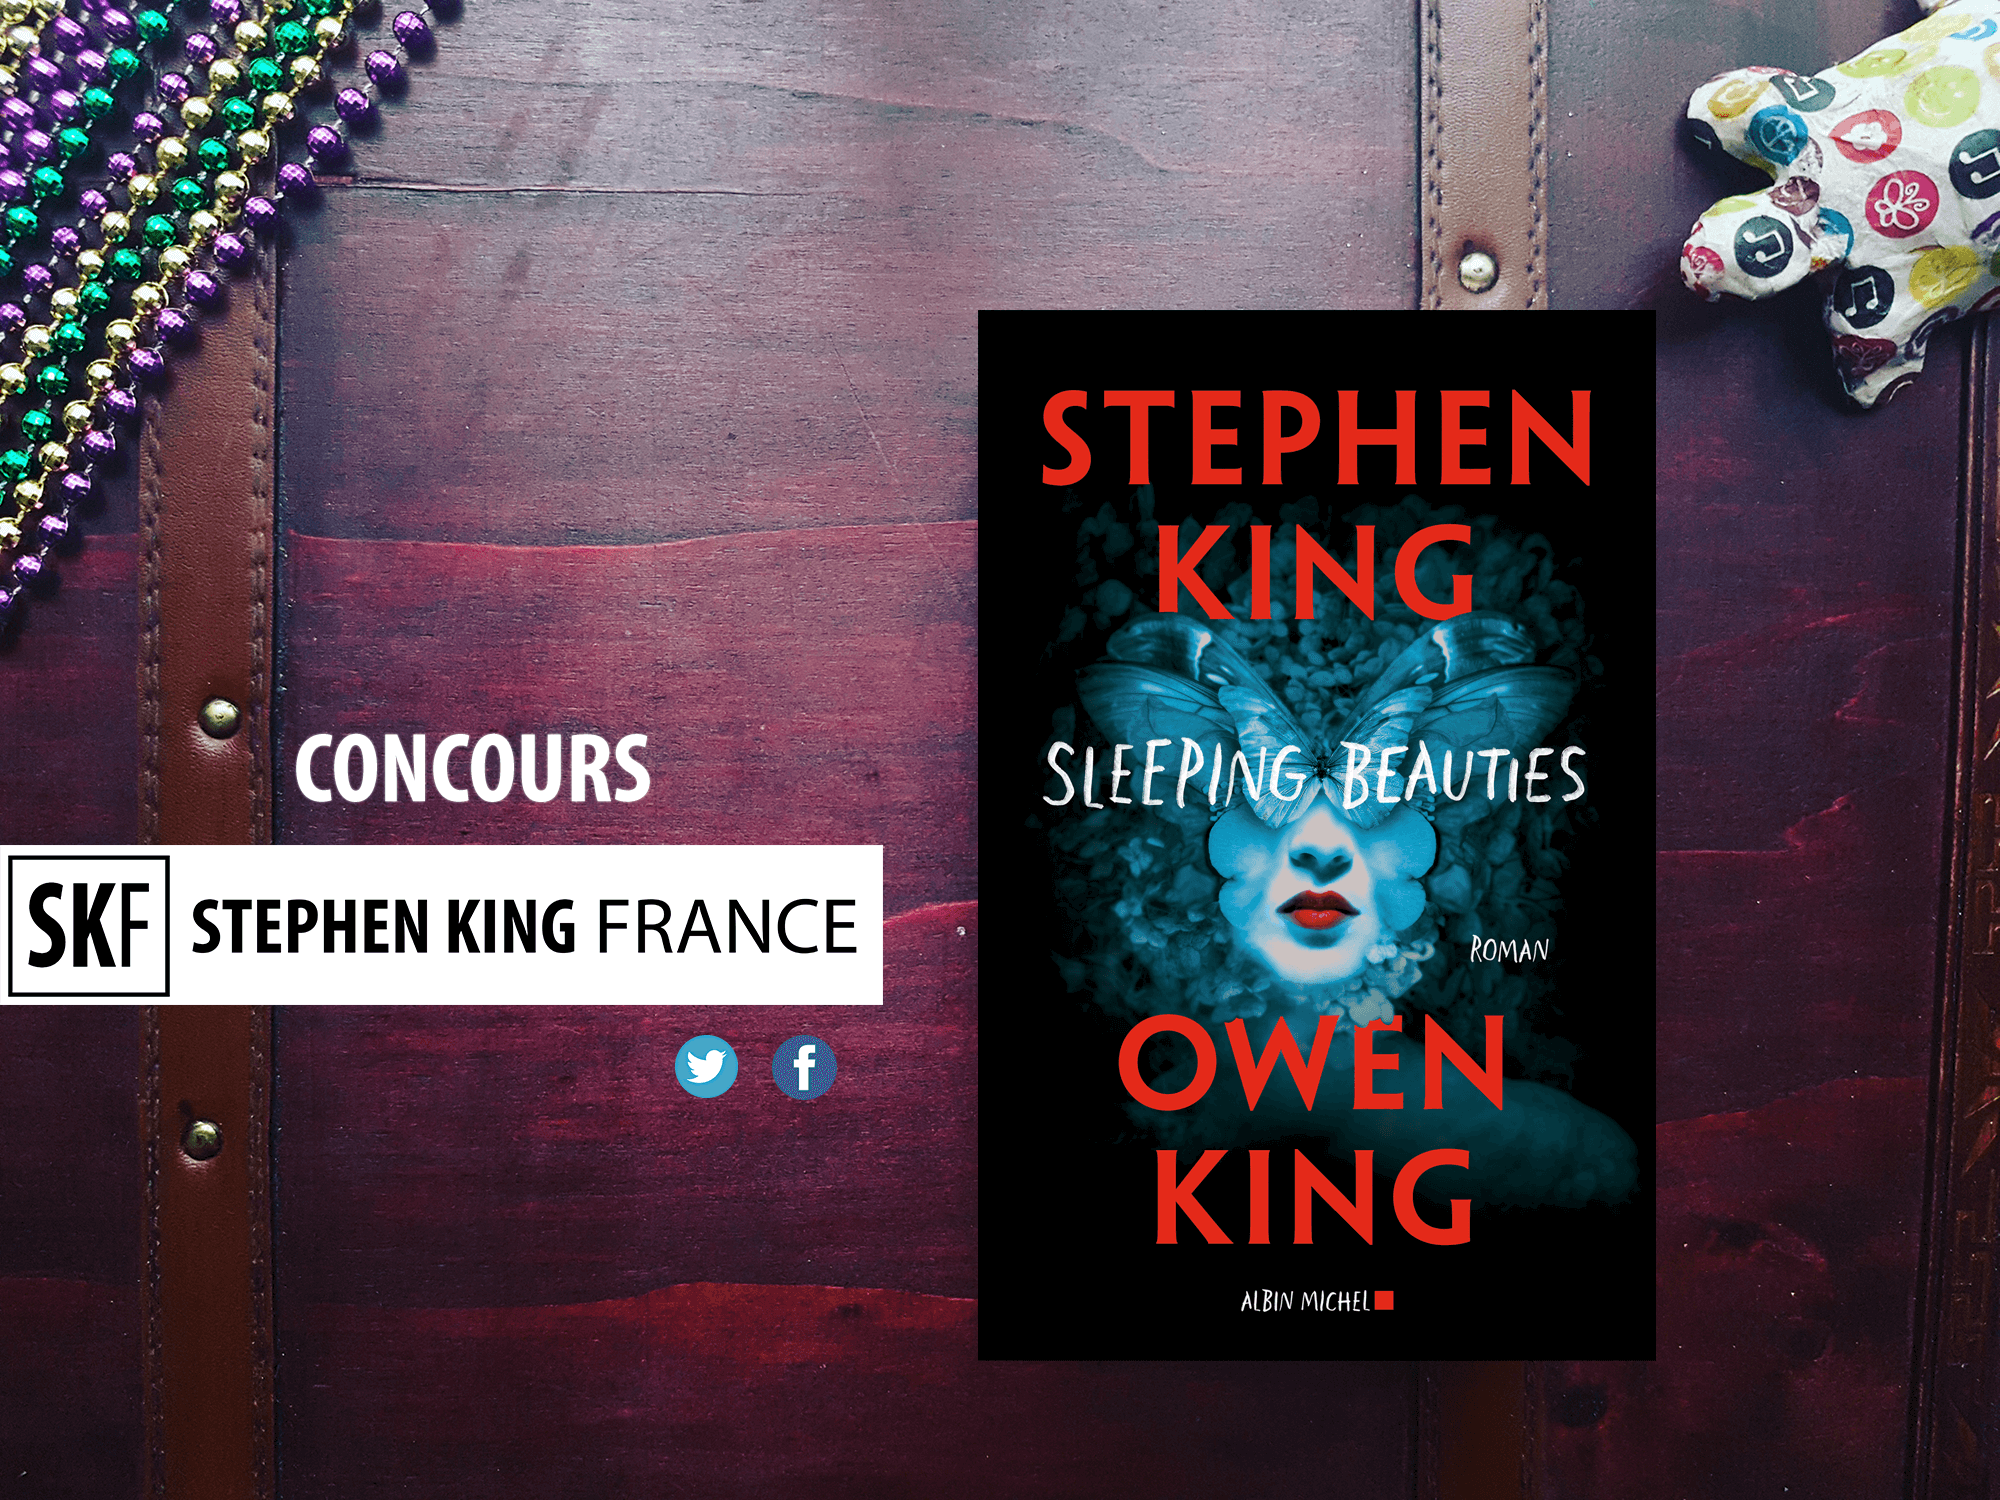 Concours sleeping beauties albin michel stephen king